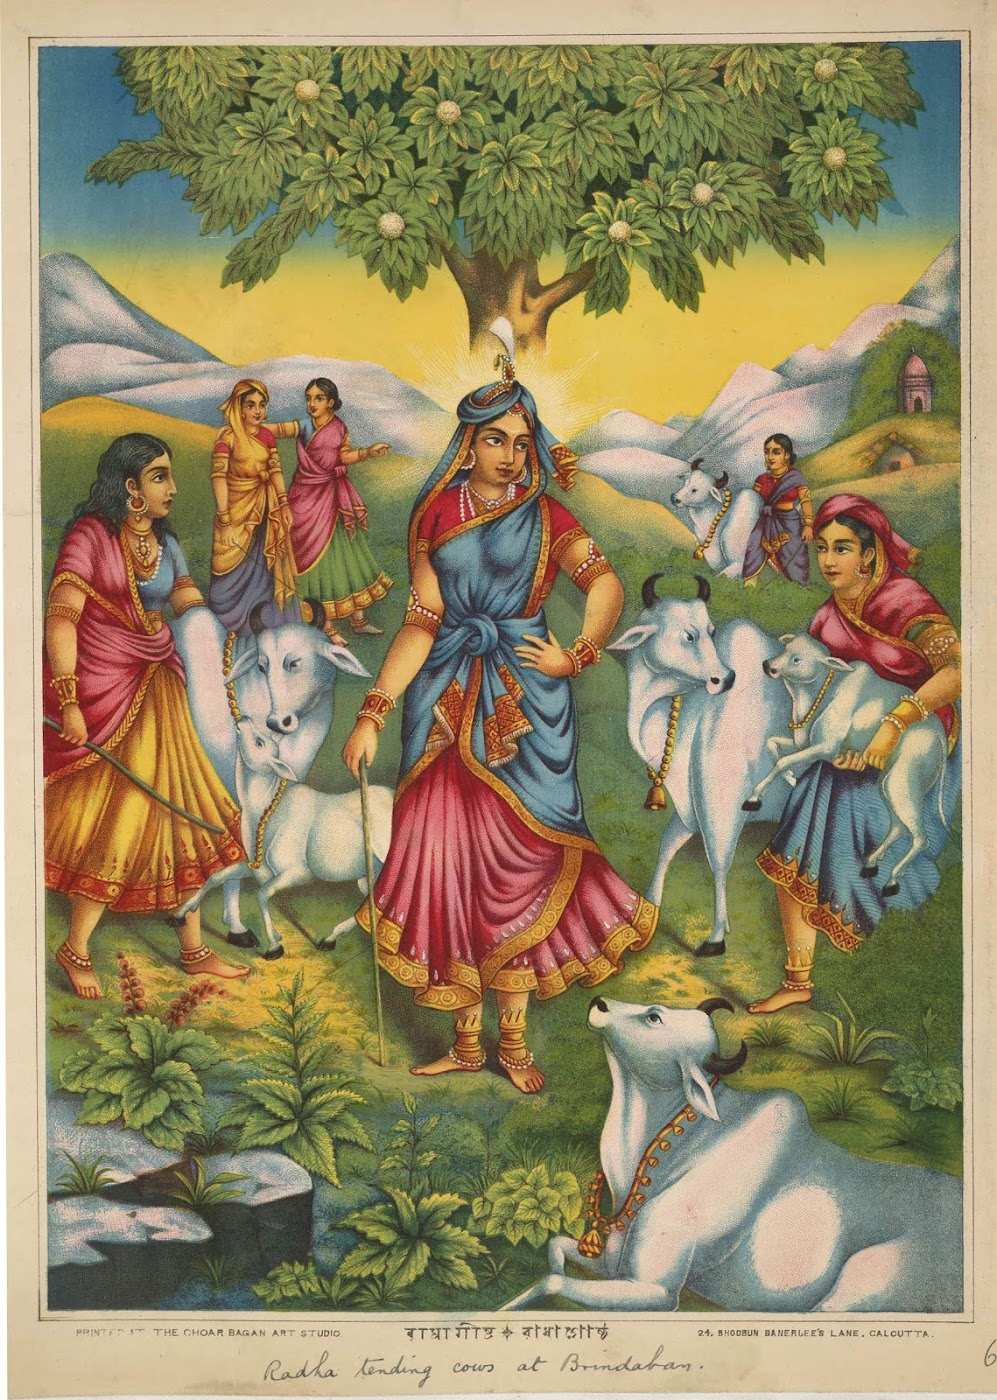 Radha Tending Cows in Vrindavan, stands Beneath a Flowering Kadamba Tree and is Accompanied by other Gopis - Printed by Chore Bagan Art Studio, Calcutta (Kolkata), Circa 1895